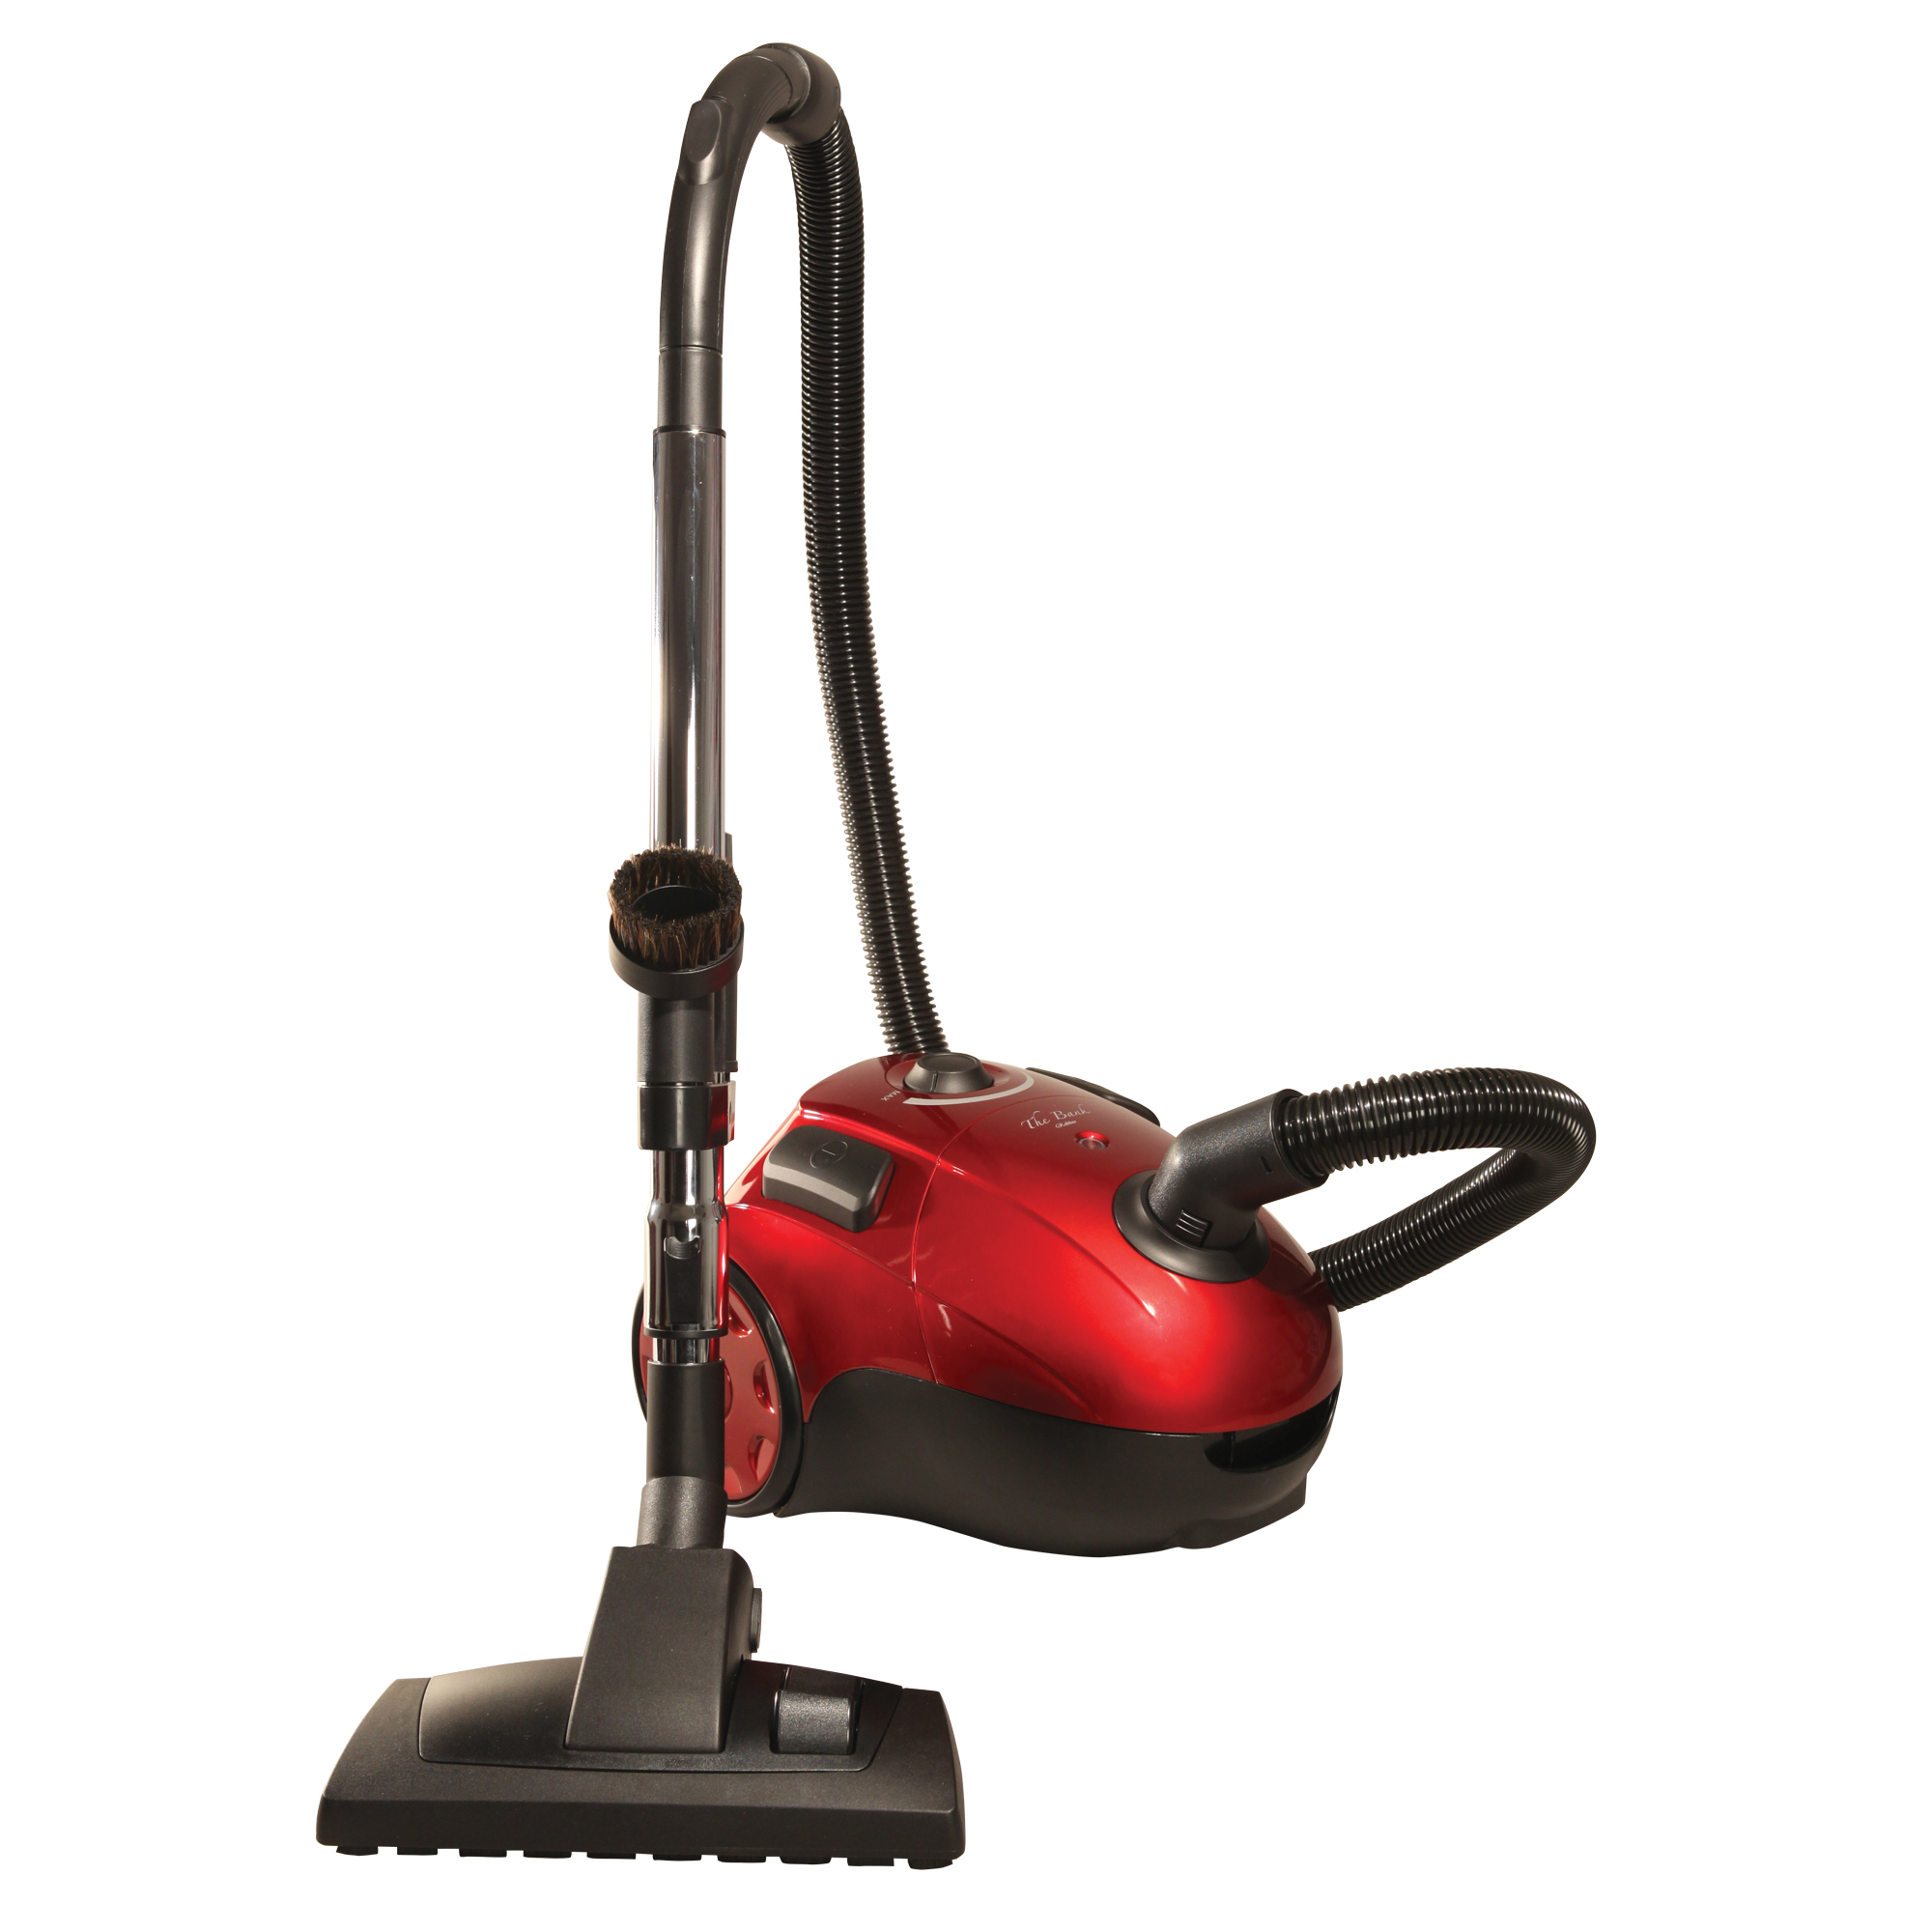 The Bank ROBBER Powerful Compact Canister Vacuum with 20' Retractable Cord, Rubber Wheels